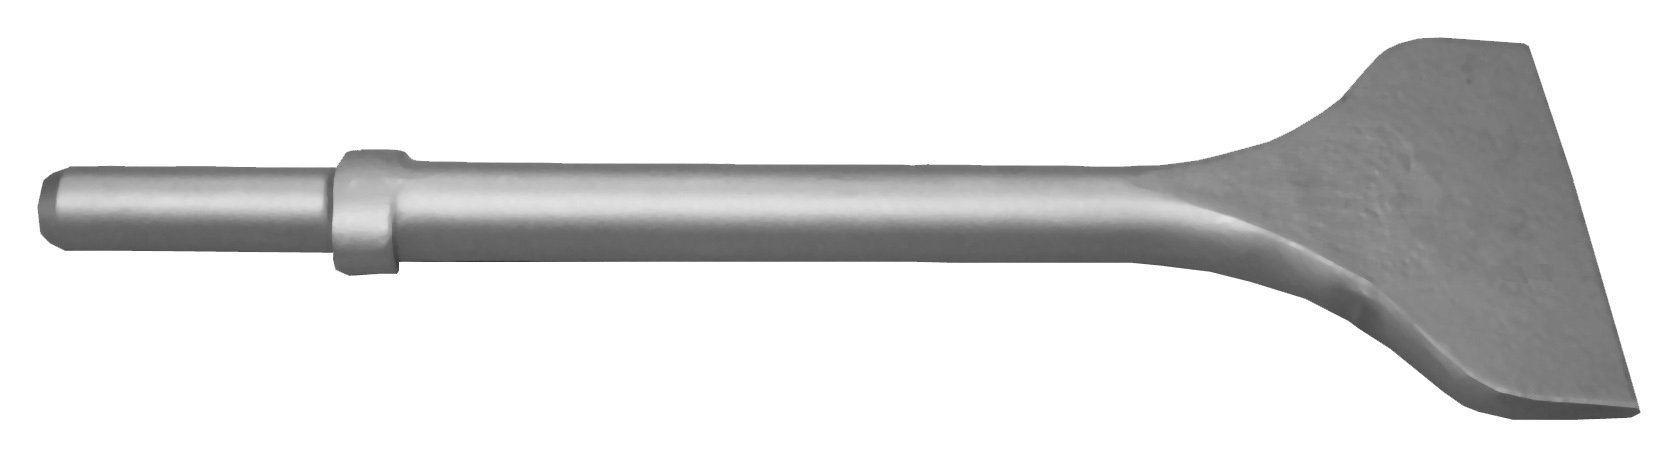 Champion Chisel, 12-Inch Long by 4-Inch Wide .680 Round Shank Oval Collar Chipping Hammer Chisel